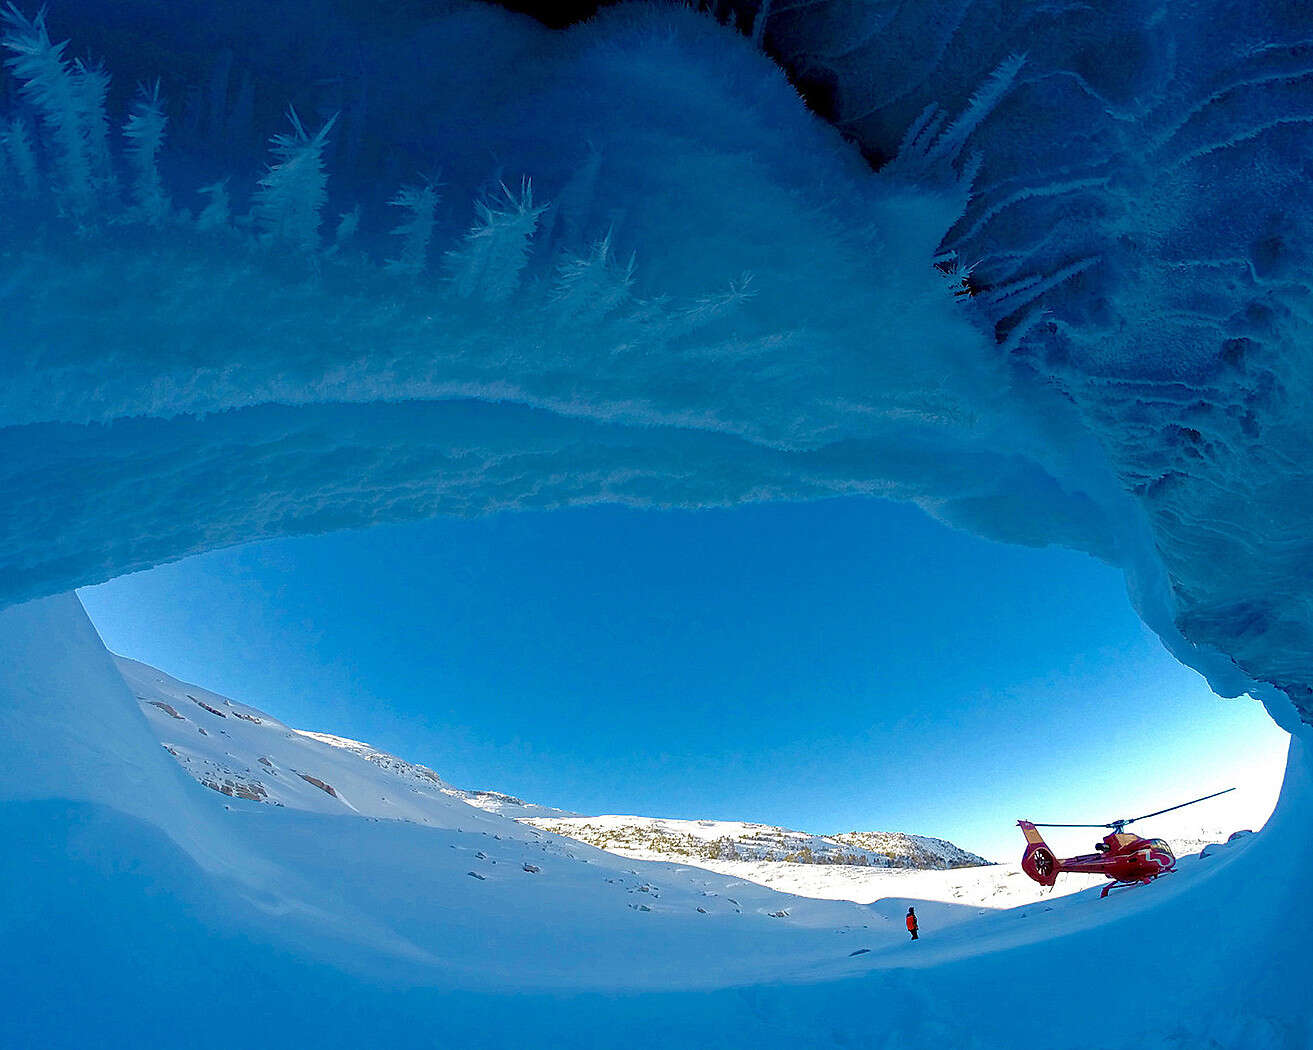 High-Flying Winter Luxury at Whistler Blackcomb